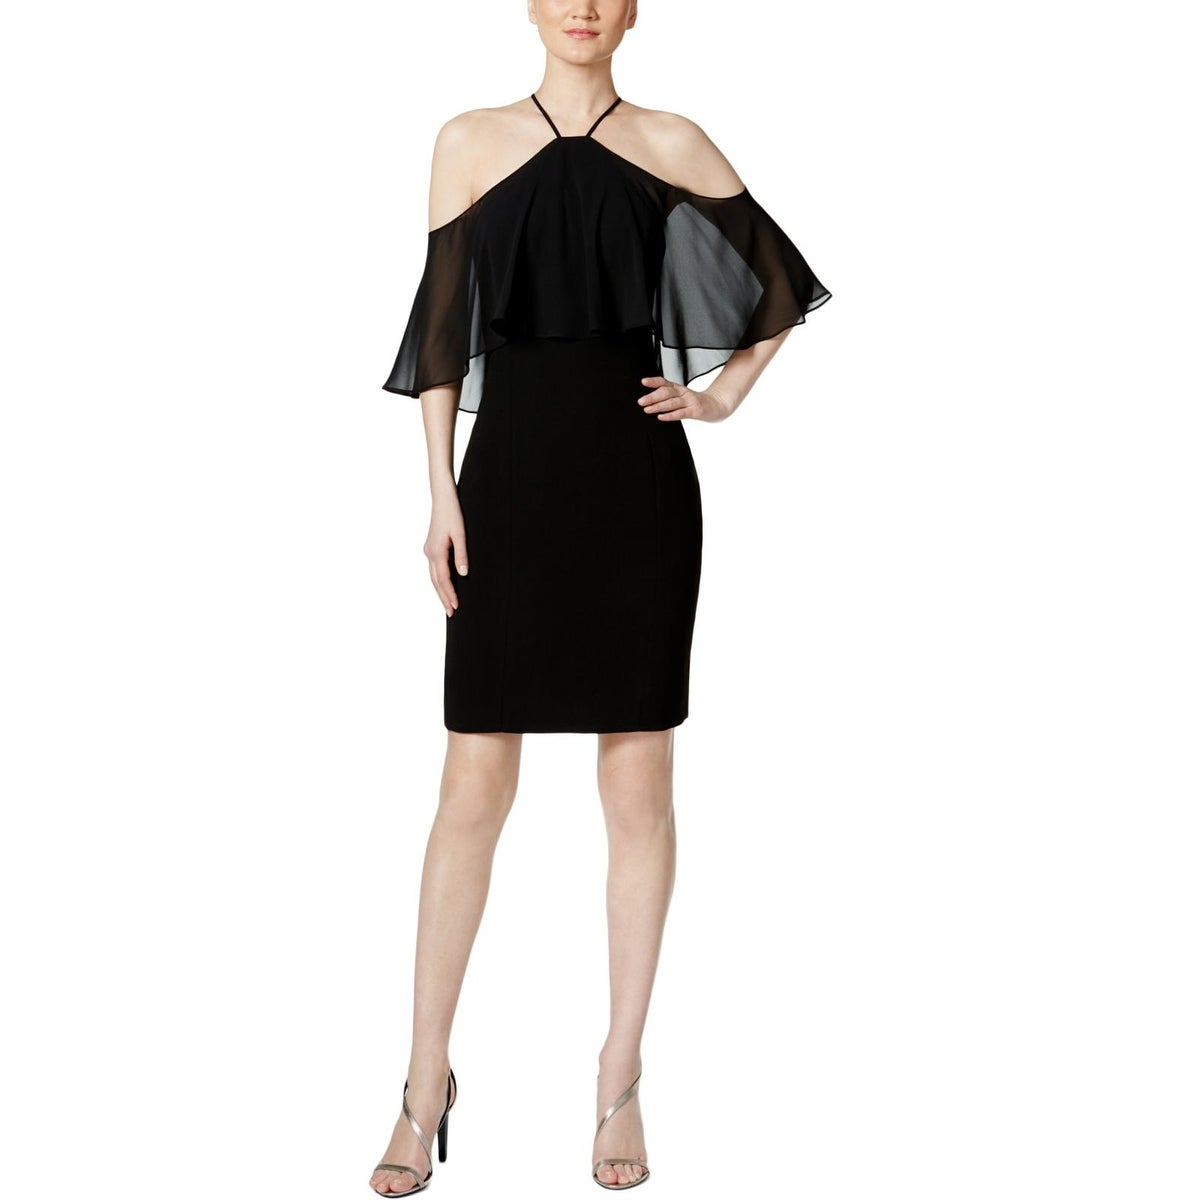 104770ef0dbd Calvin Klein Dresses | Find Great Women's Clothing Deals Shopping at  Overstock